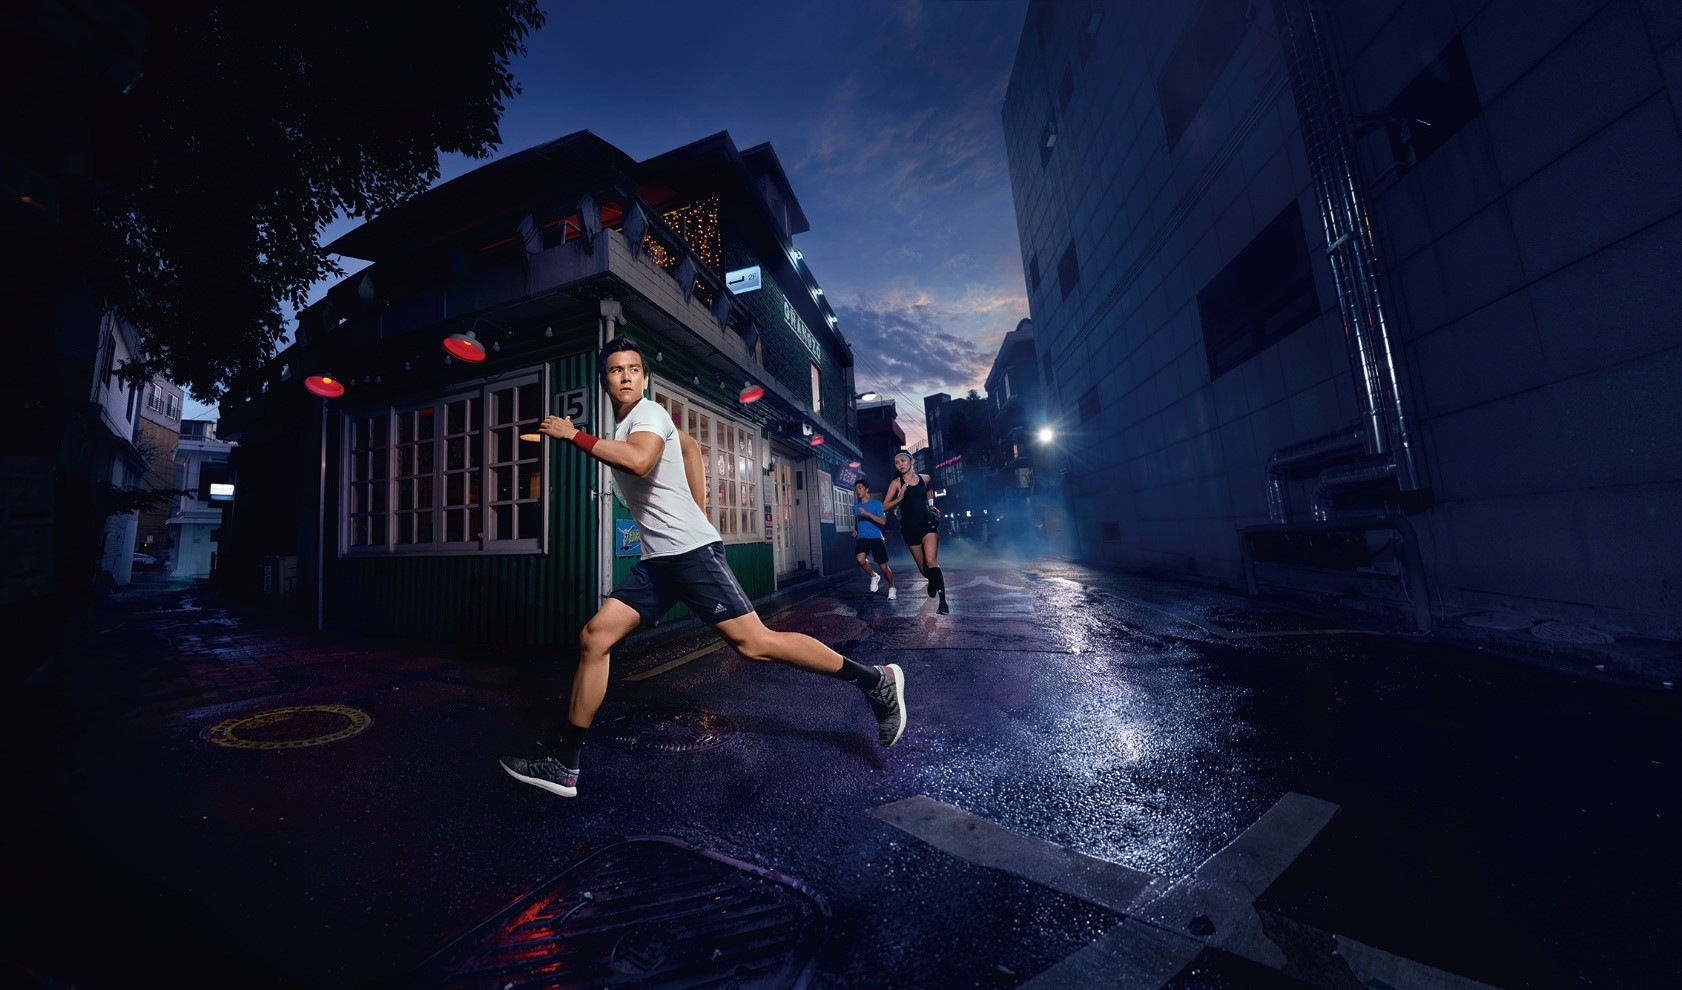 Run through the streets and adapt to